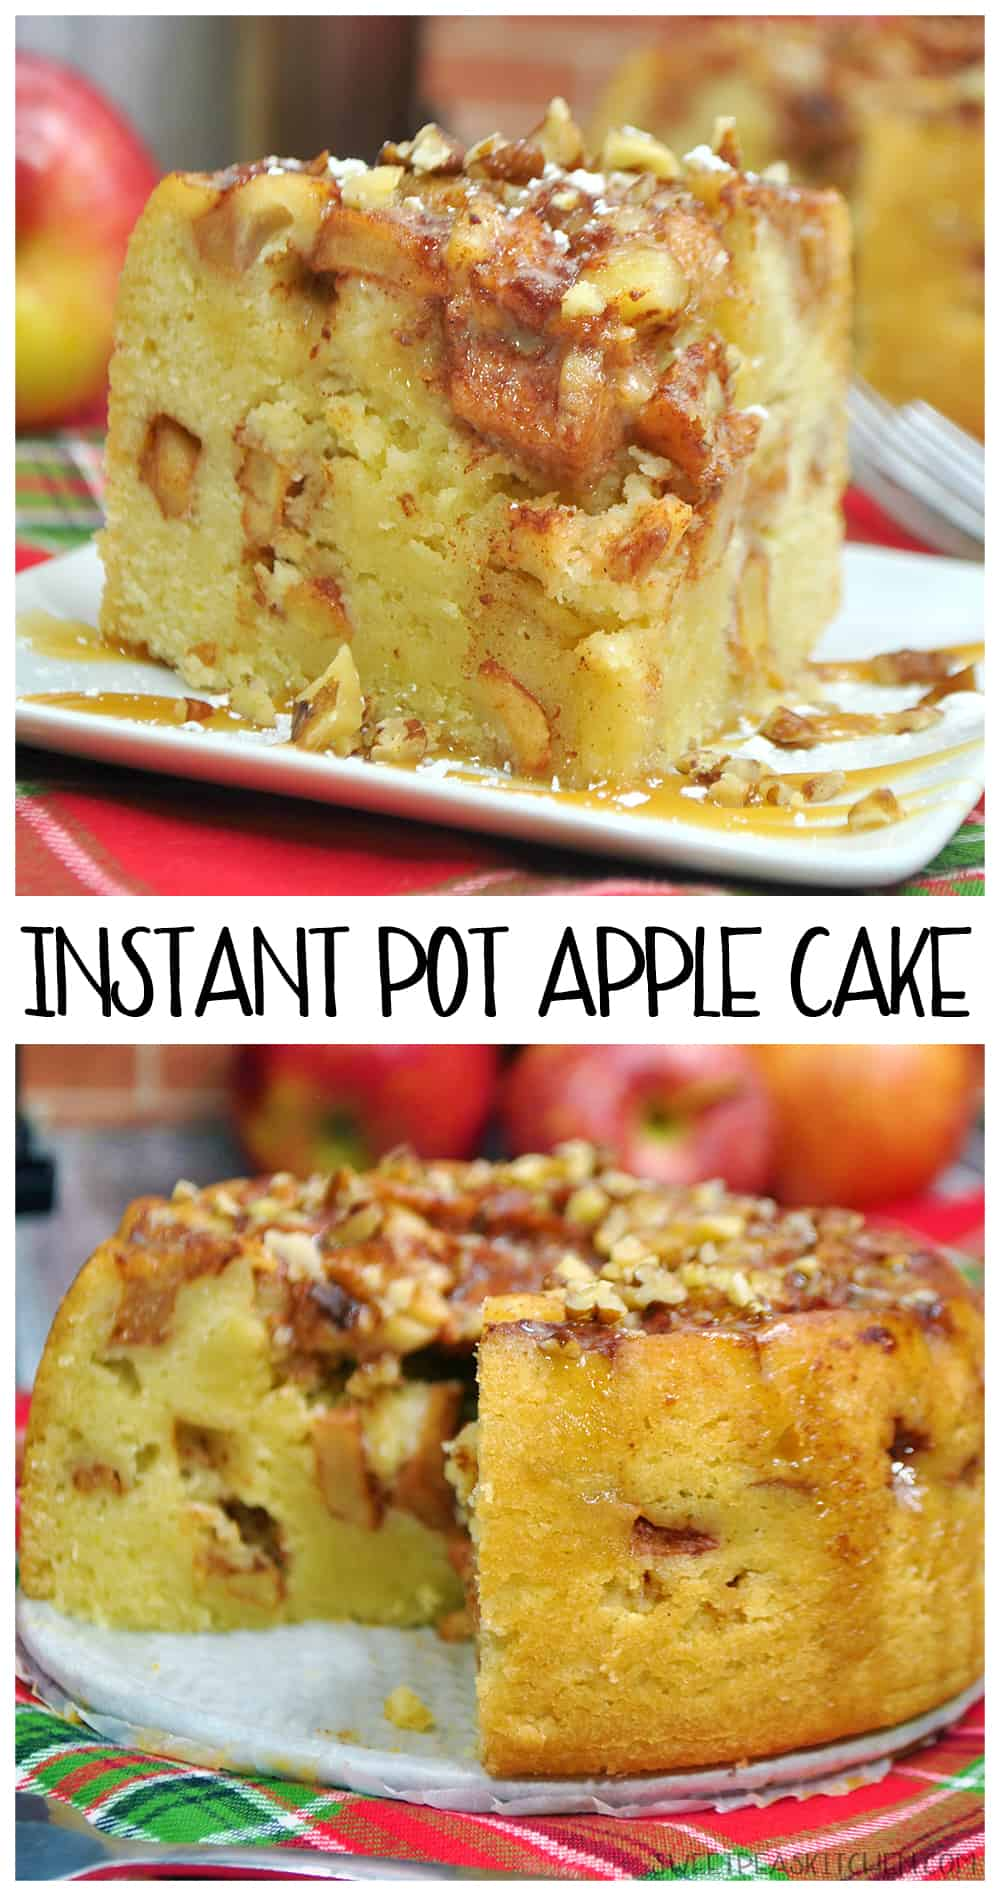 Instant Pot Apple Cake Recipe